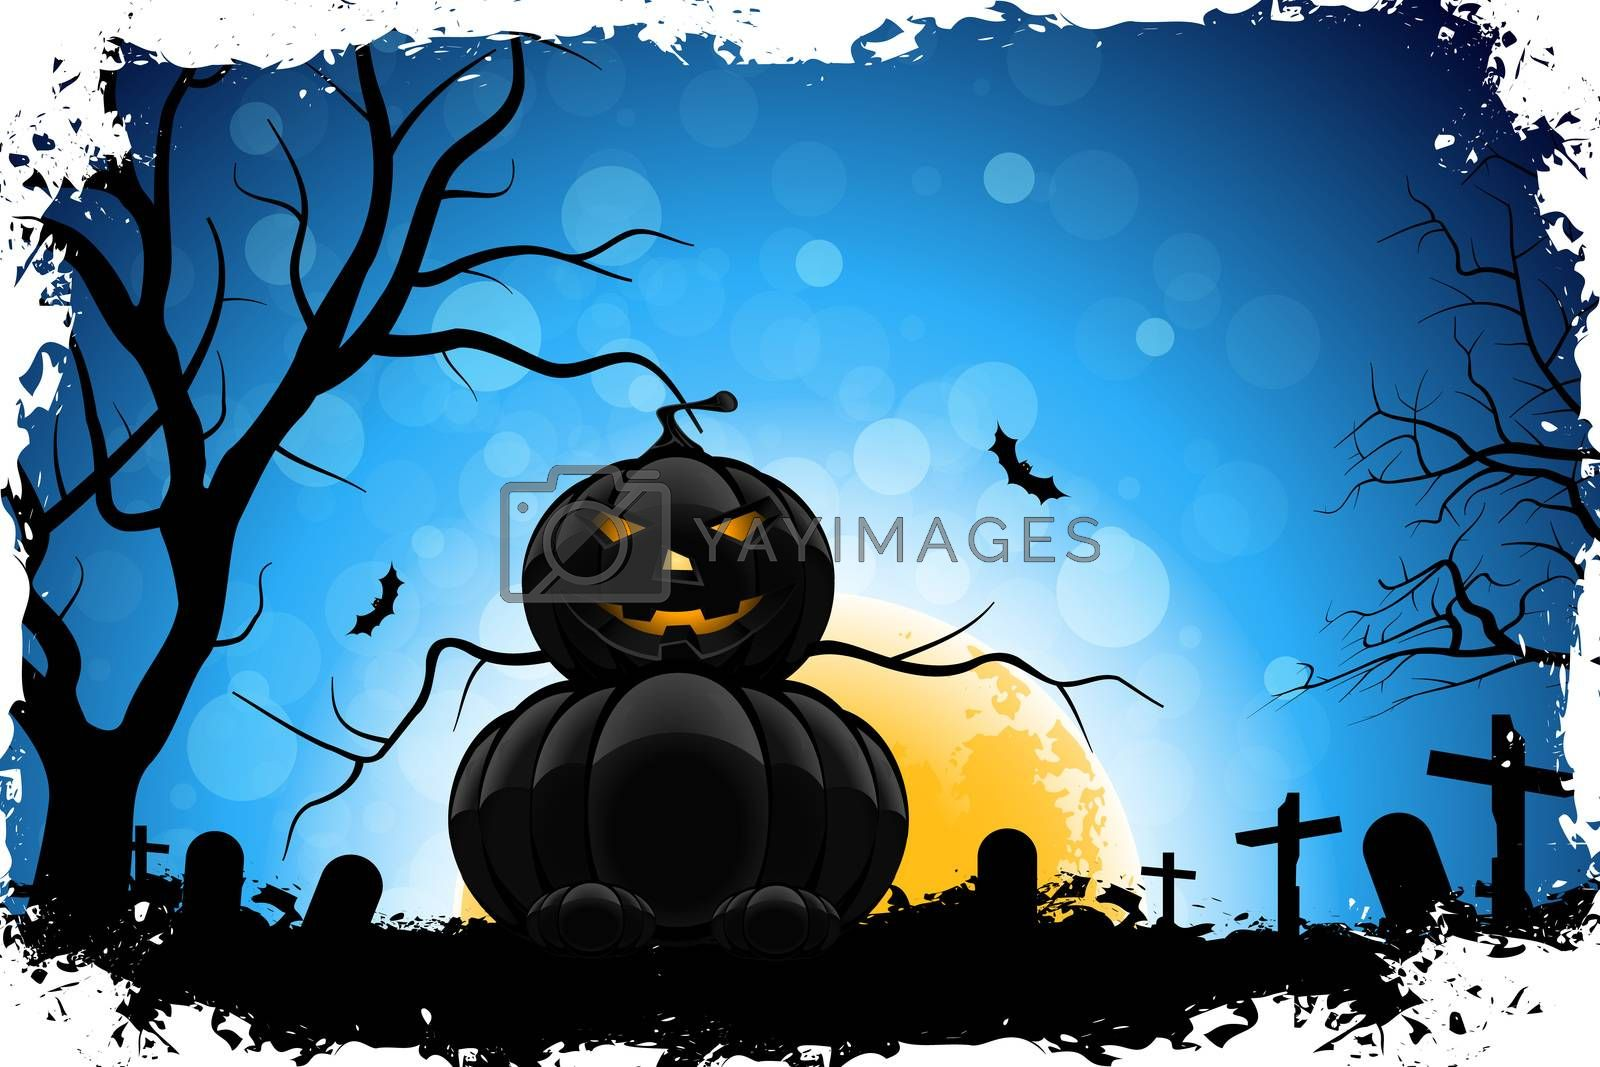 Grungy Halloween Background with Pumpkin, Tree, Grave, Cross and Full Moon